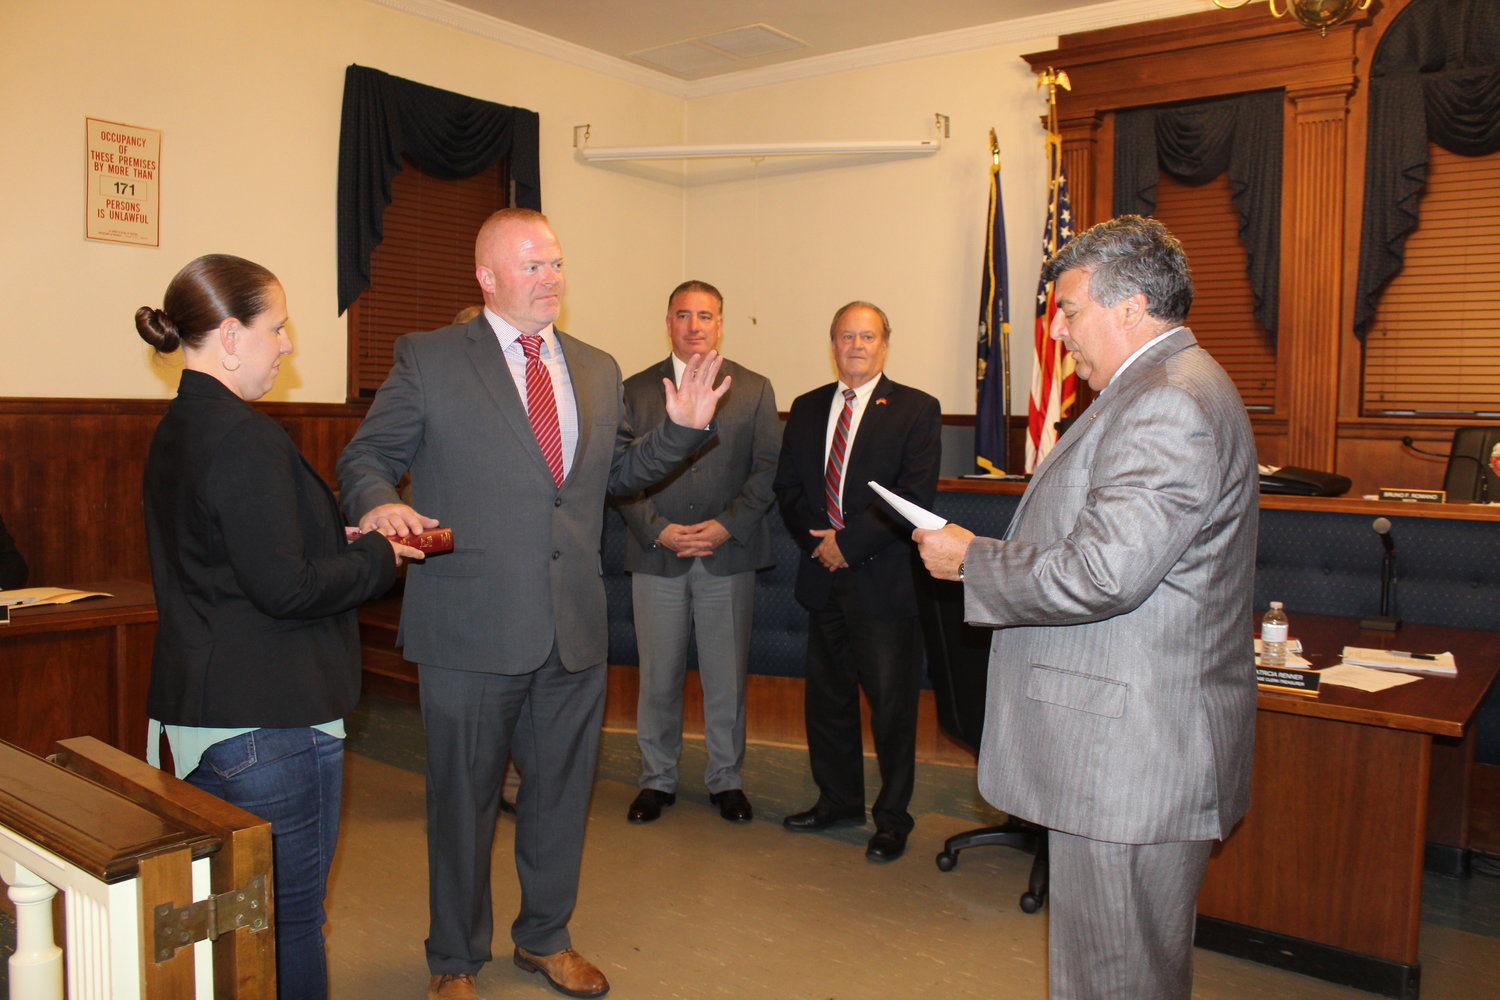 Tim O'Hagan was sworn in as an East Rockaway village trustee by Mayor Bruno Romano, joined by O'Hagan's wife, Kristen, and Trustees Richard Bilello and Gordon Fox.